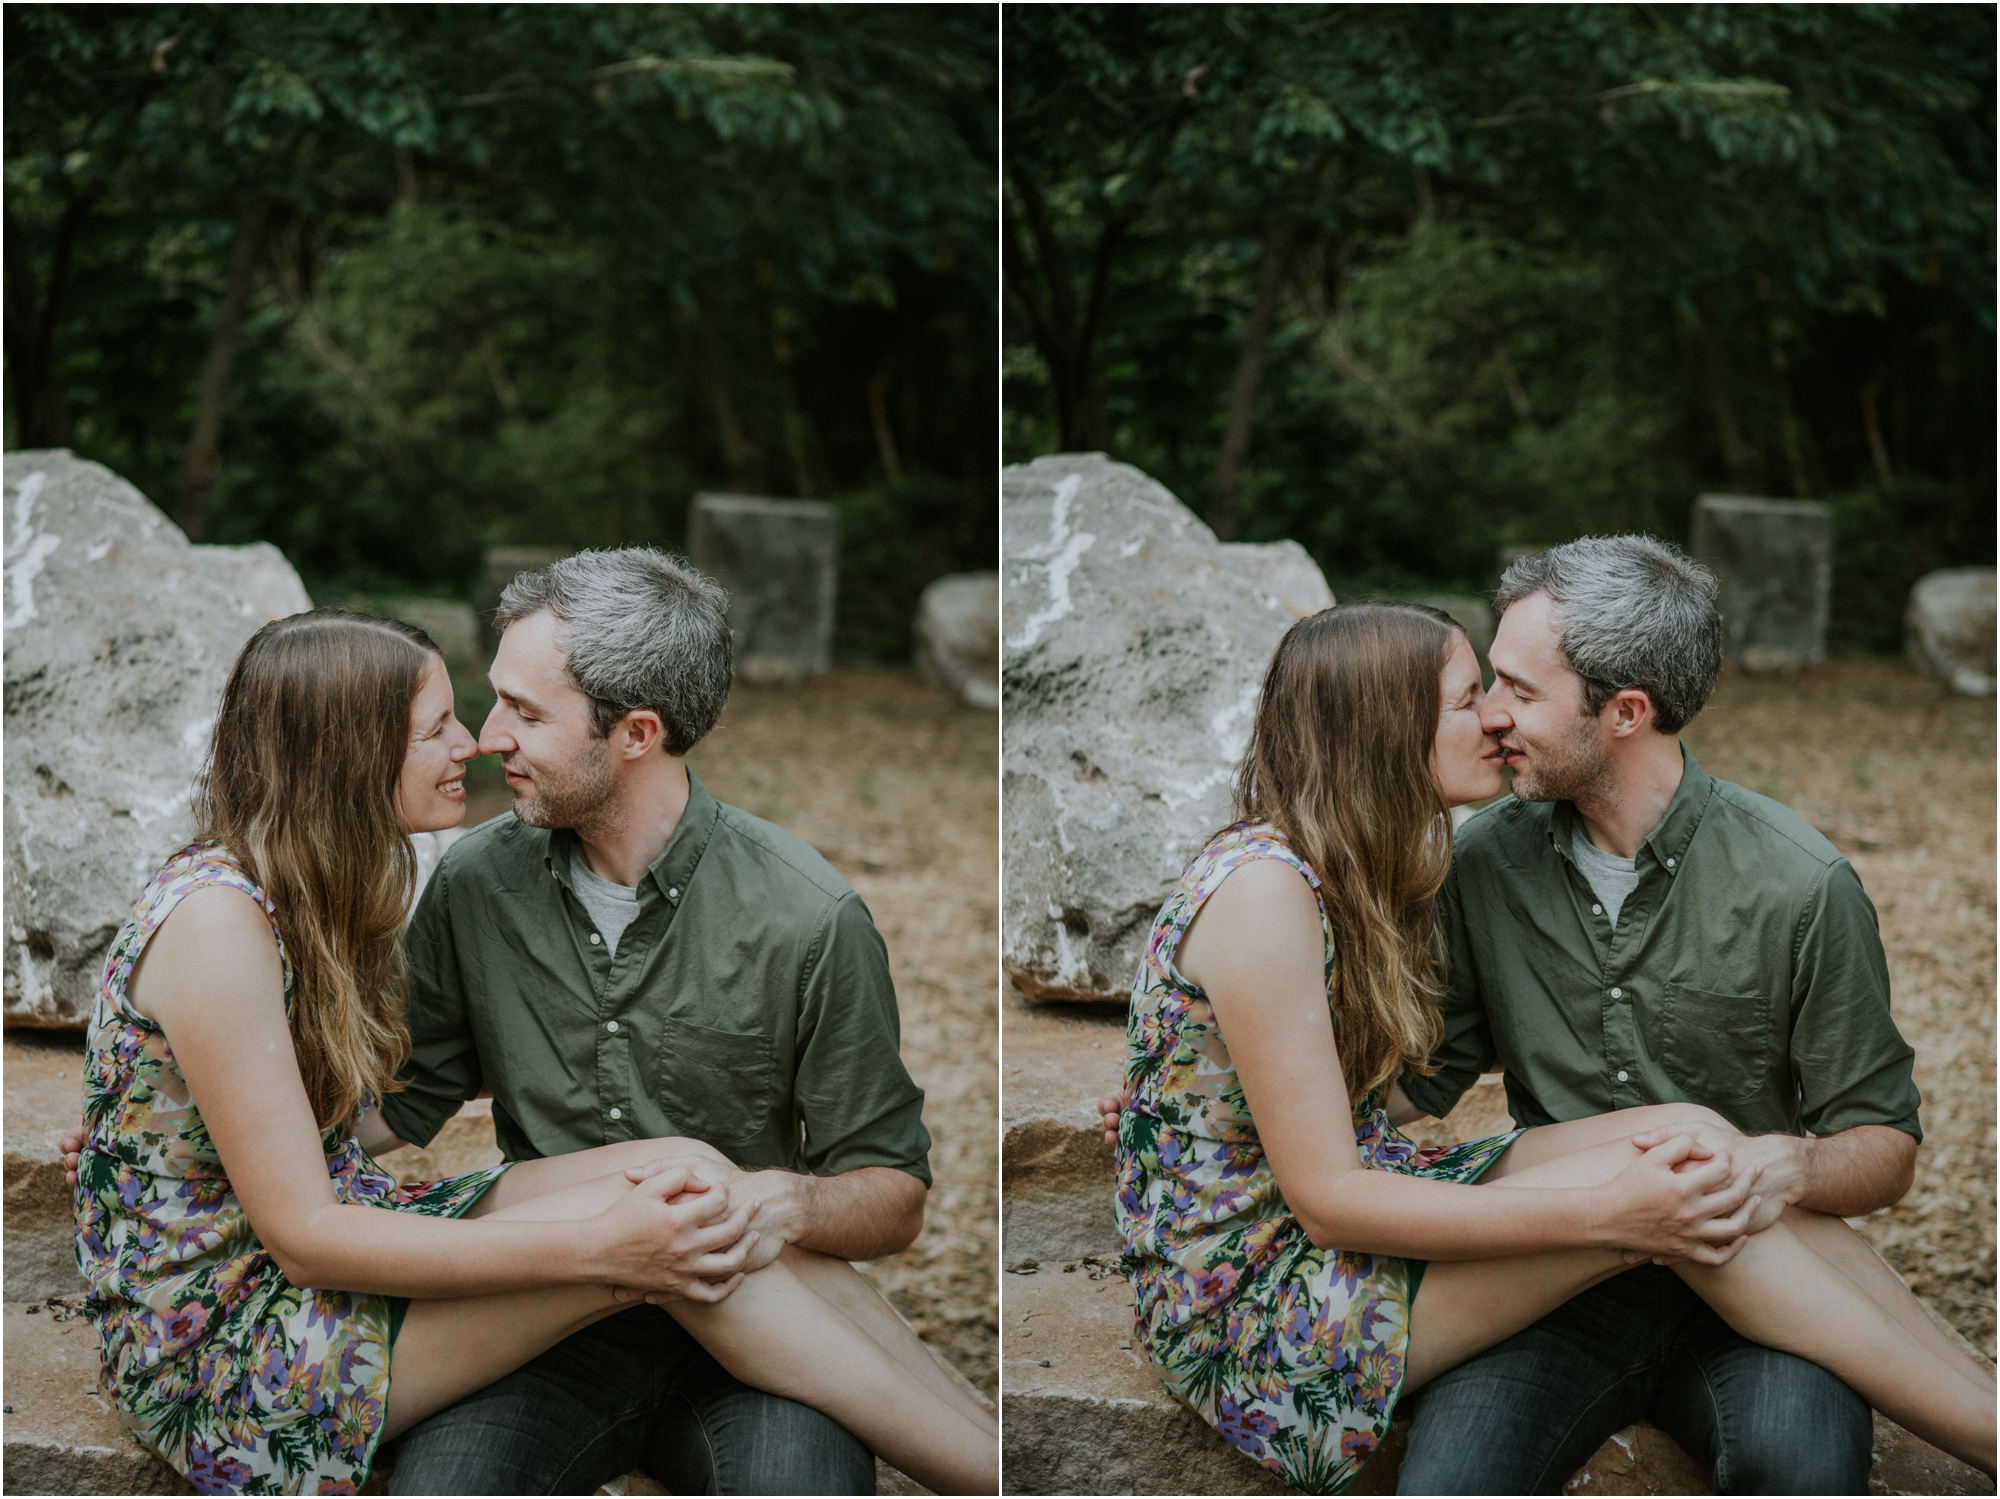 meads-quarry-ijams-nature-center-knoxville-tennessee-engagement-session-summer-northeast-tn-adventurous-outdoors-lake-katy-sergent_0012.jpg